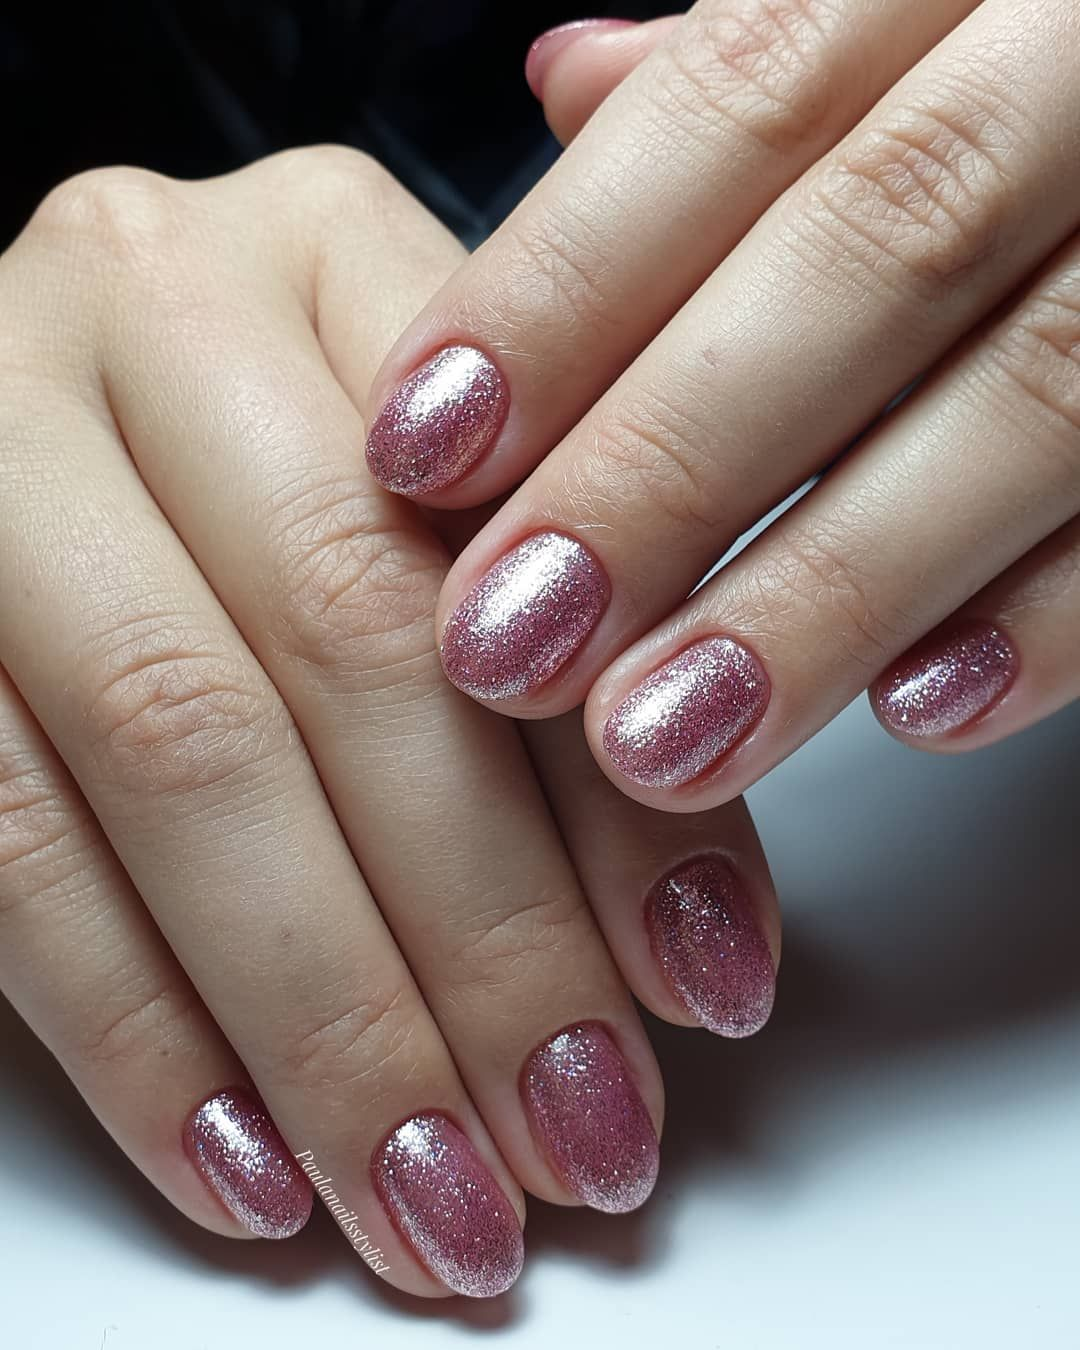 100+ Latest Nail Trends for Winter 2020 - Nail Art Design ...